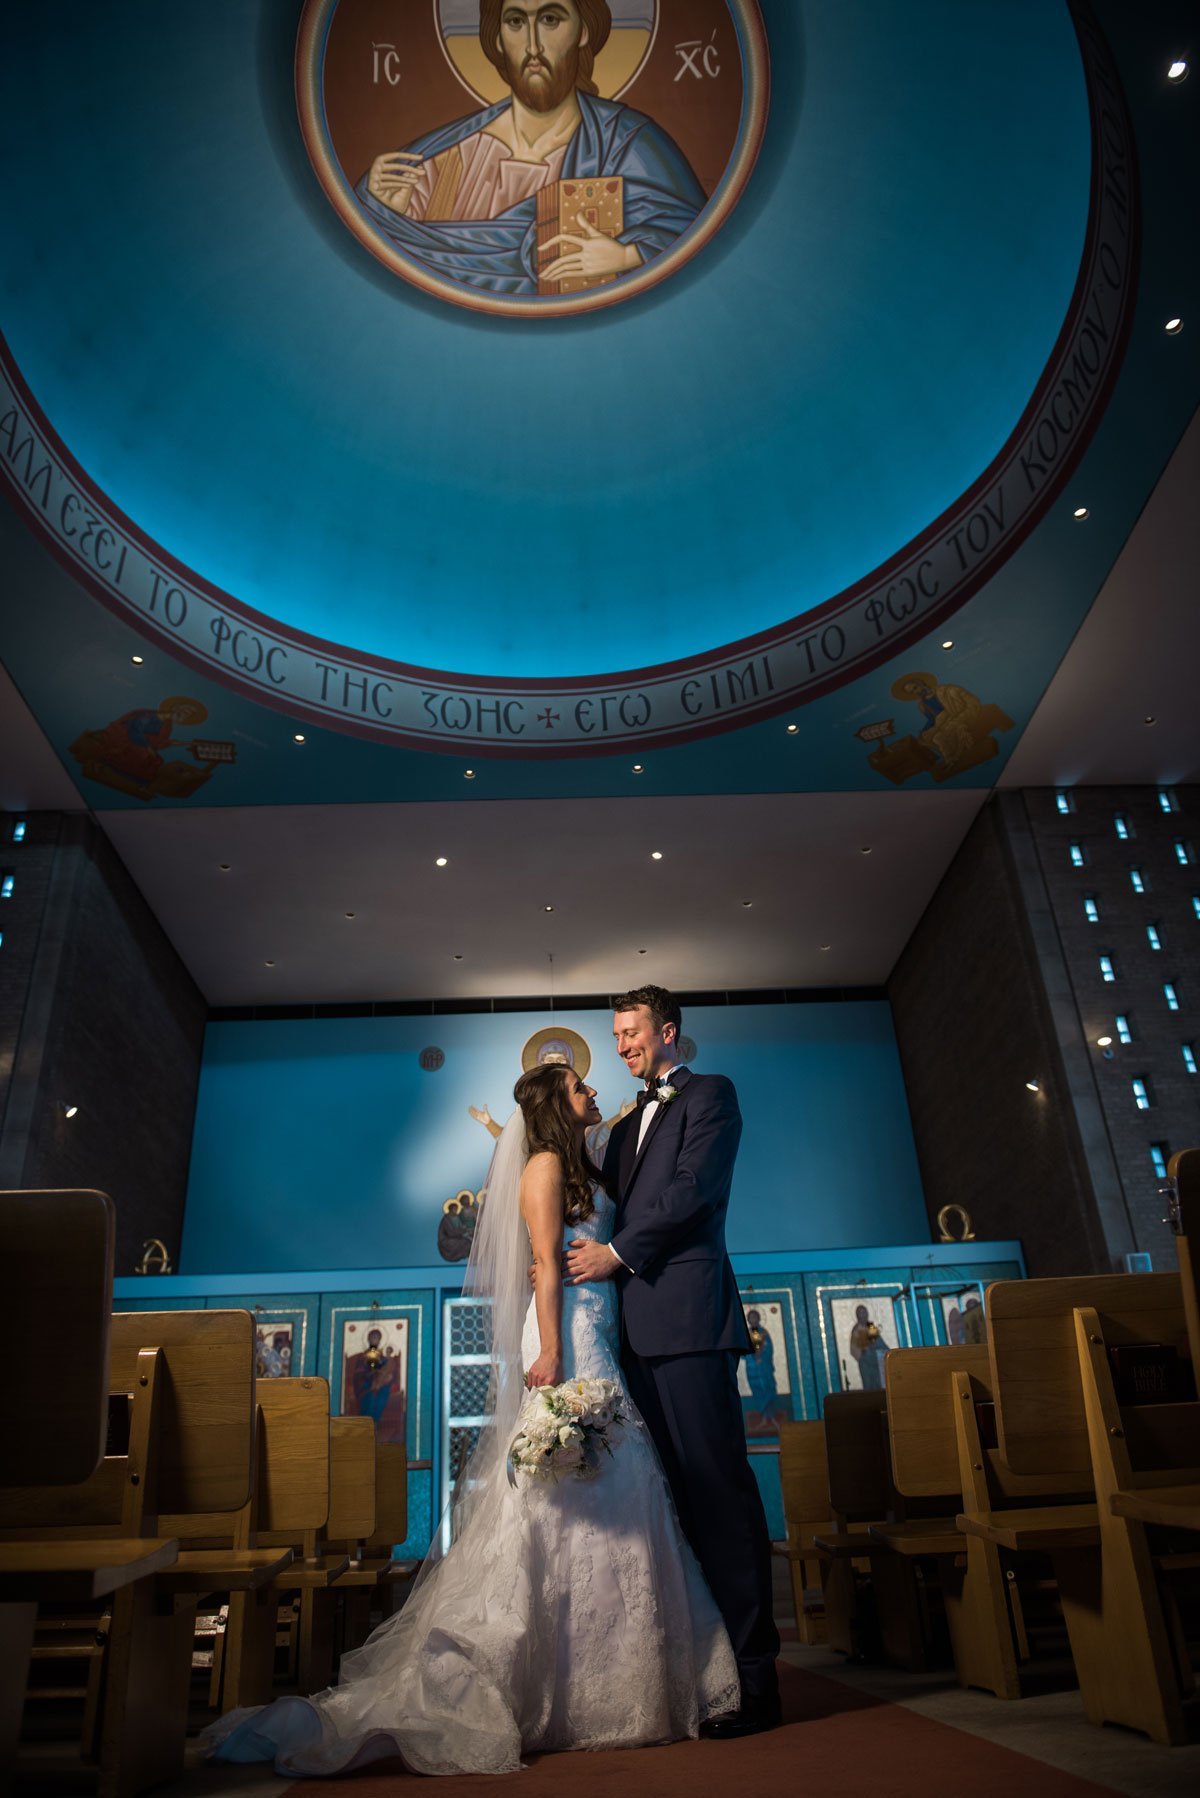 Greek Minneapolis Wedding bride and groom fun minneapolis wedding st marys greek orthodox church